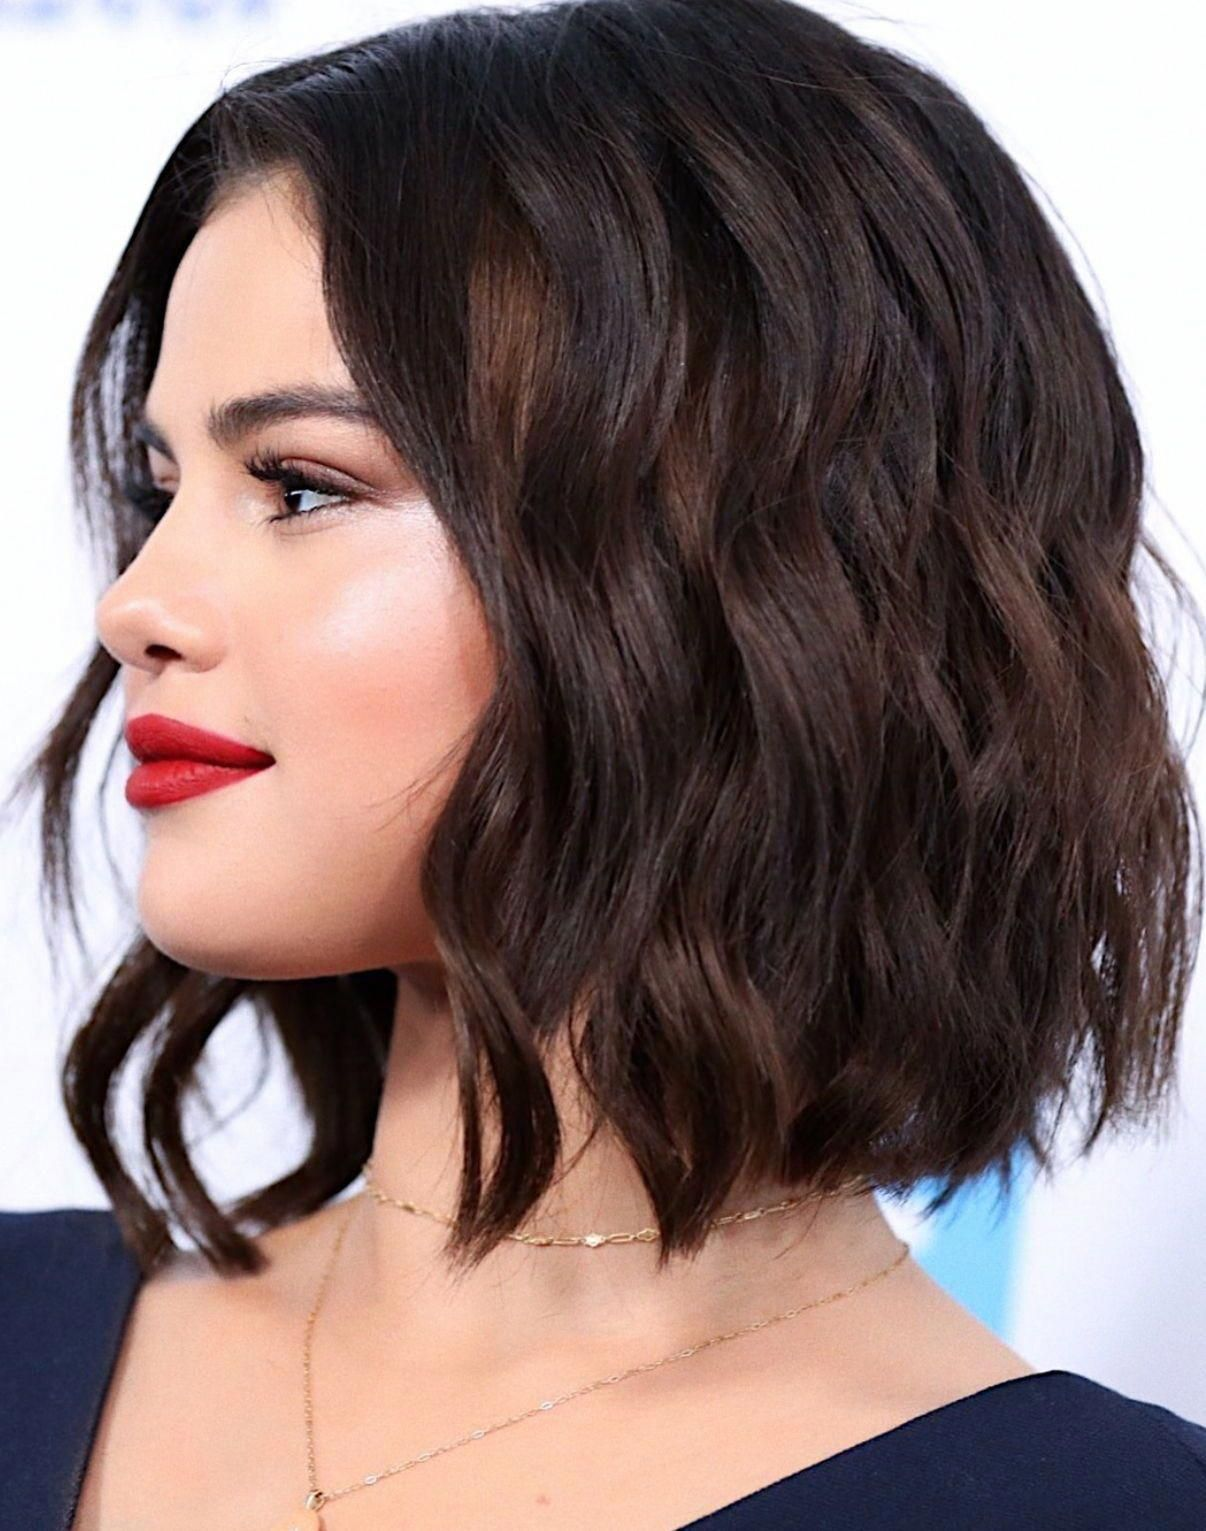 selena gomez short bob hair style and curls #haircuts